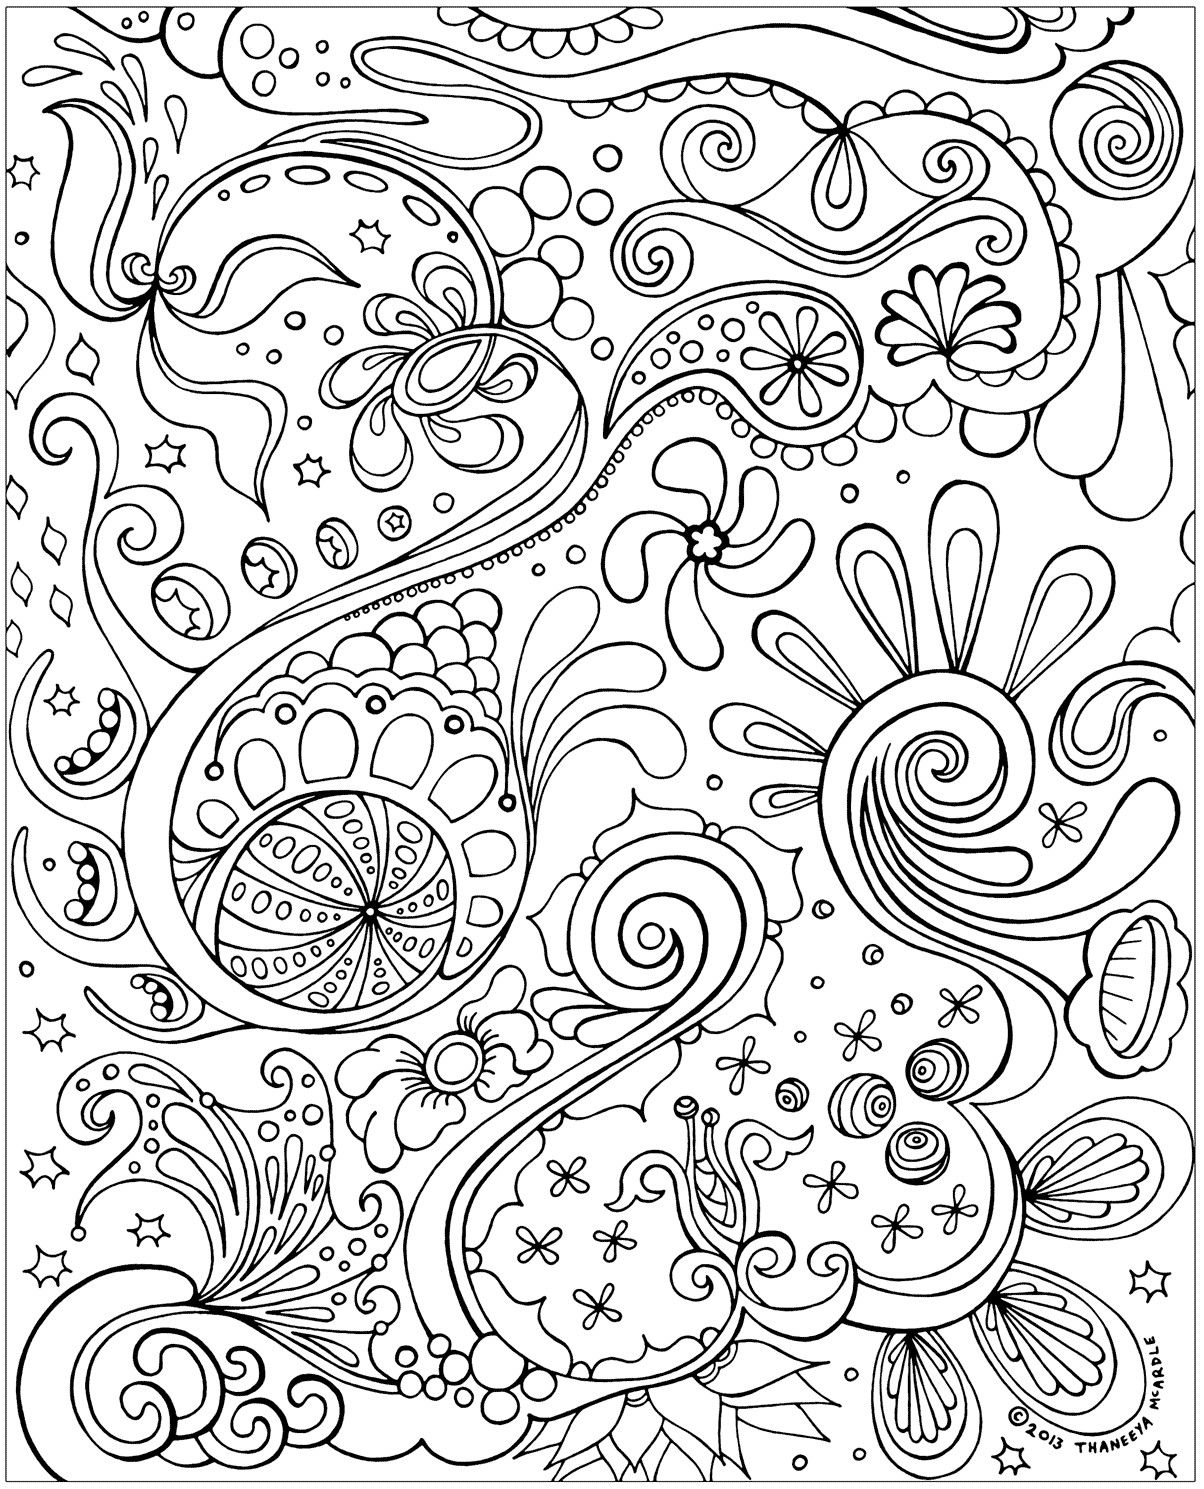 Free printable coloring pages for grown ups - Free Coloring Pages For Adults To Print 240